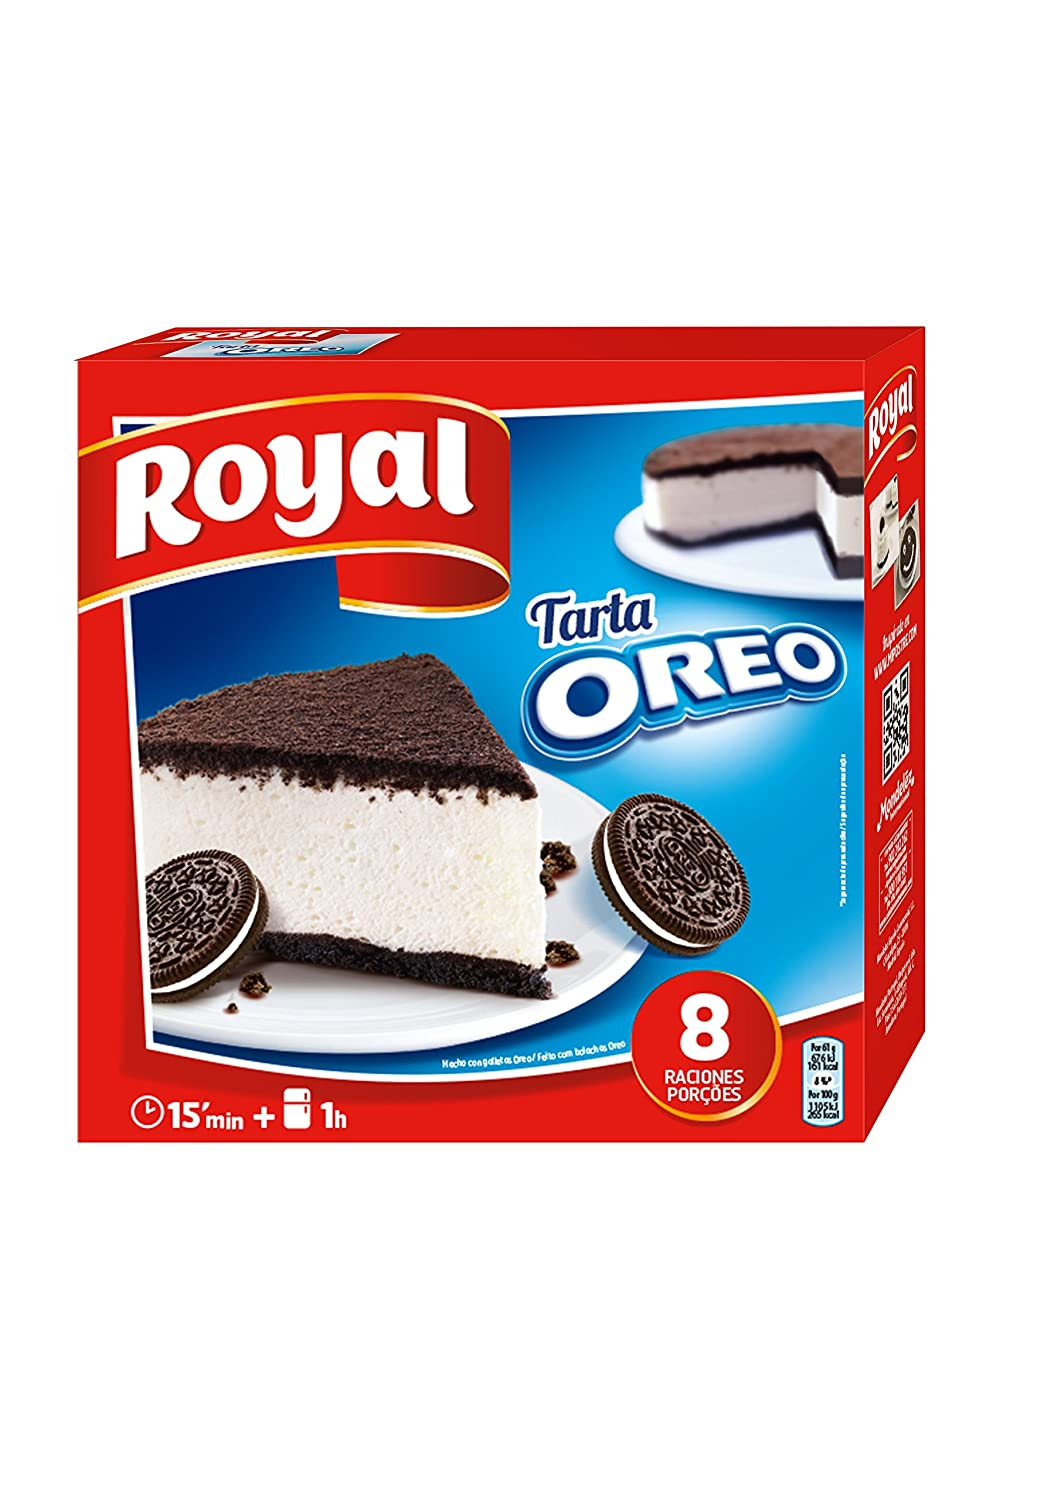 Royal Tarta Oreo No Horno - 215 g: Amazon.es: Amazon Pantry